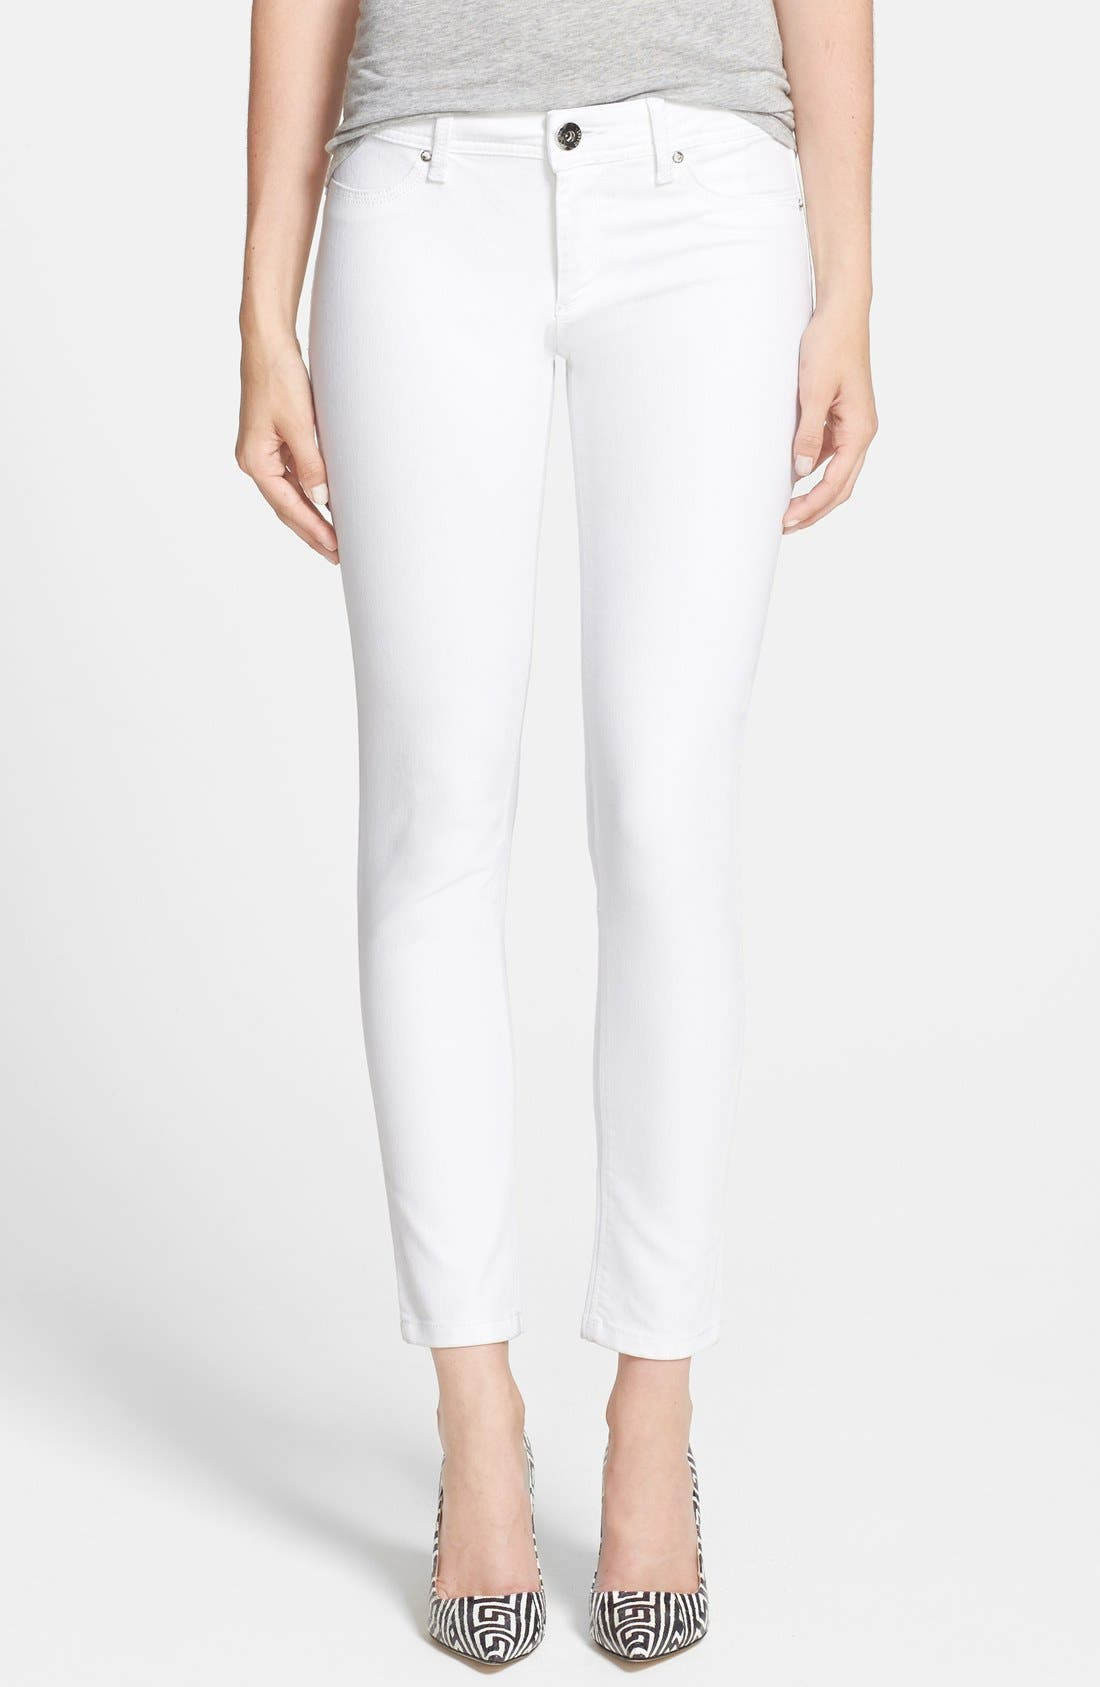 Alternate Image 1 Selected - DL1961 'Emma' Power Legging Jeans (Milk)